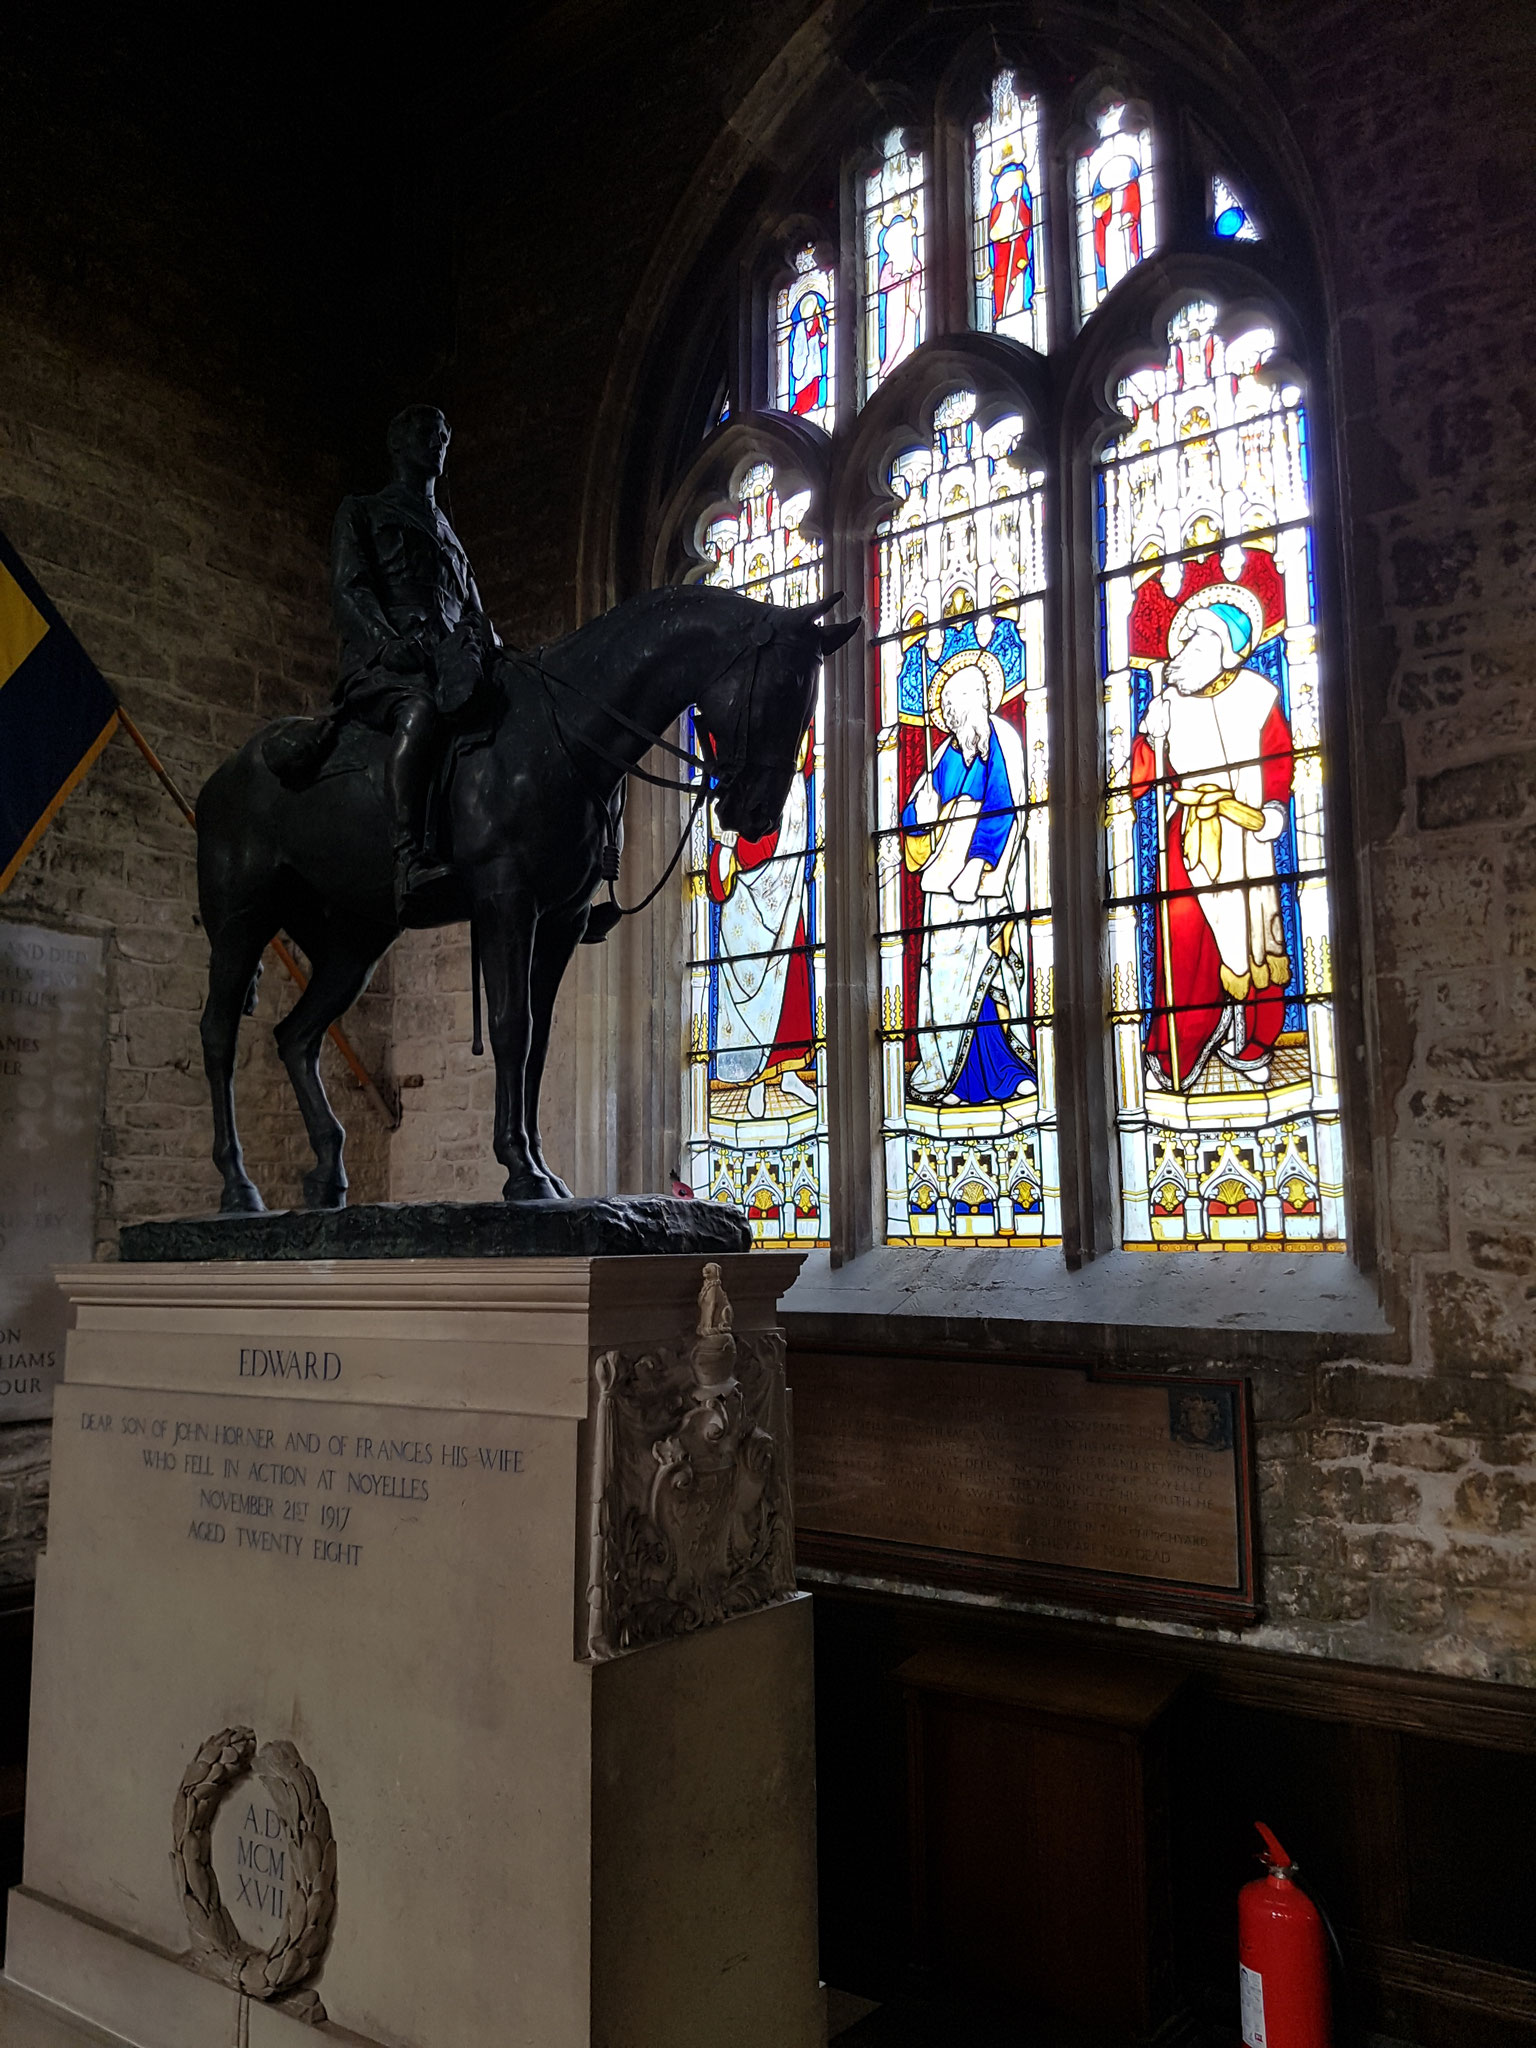 Munning's equestrian statue of Edward Horner